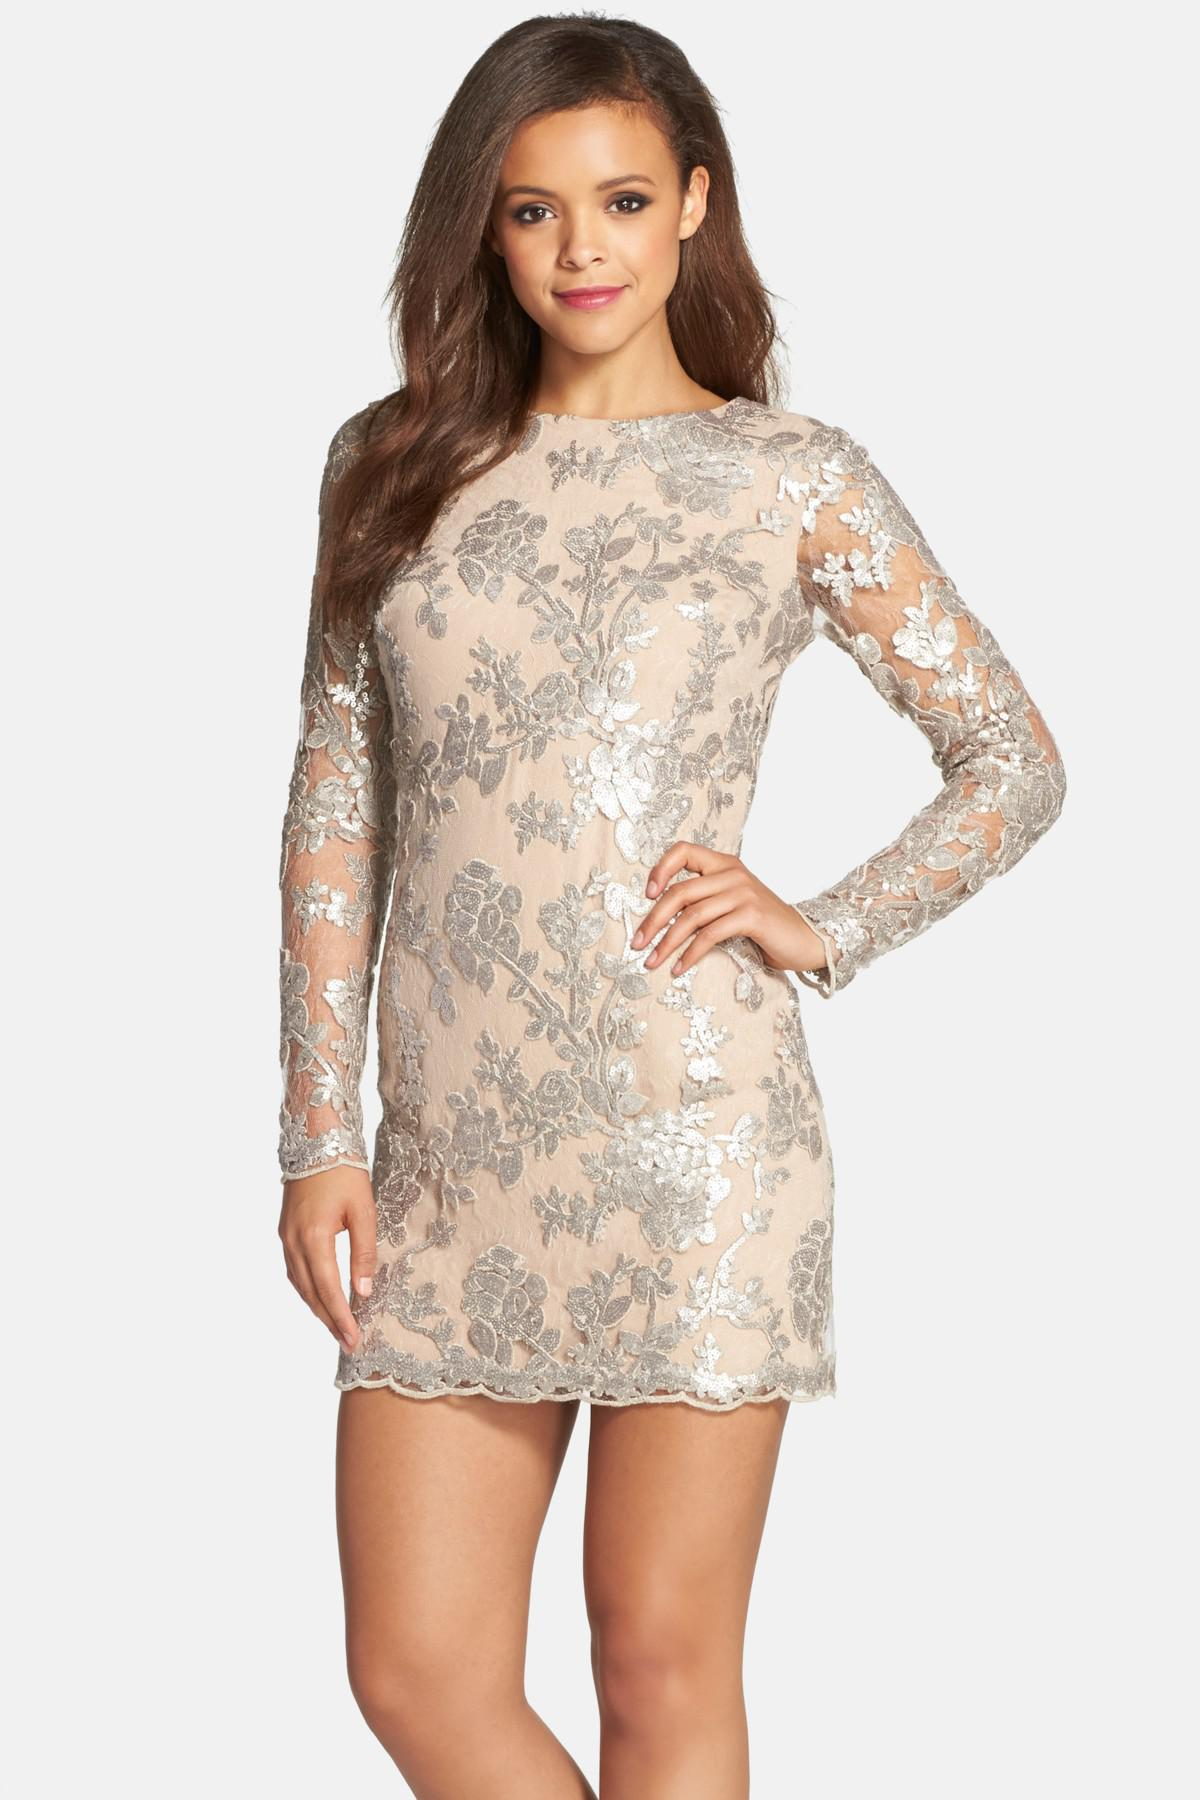 b93d00193dfd Gallery. Previously sold at: Nordstrom Rack · Women's Lace Dresses Women's  Sequin ...